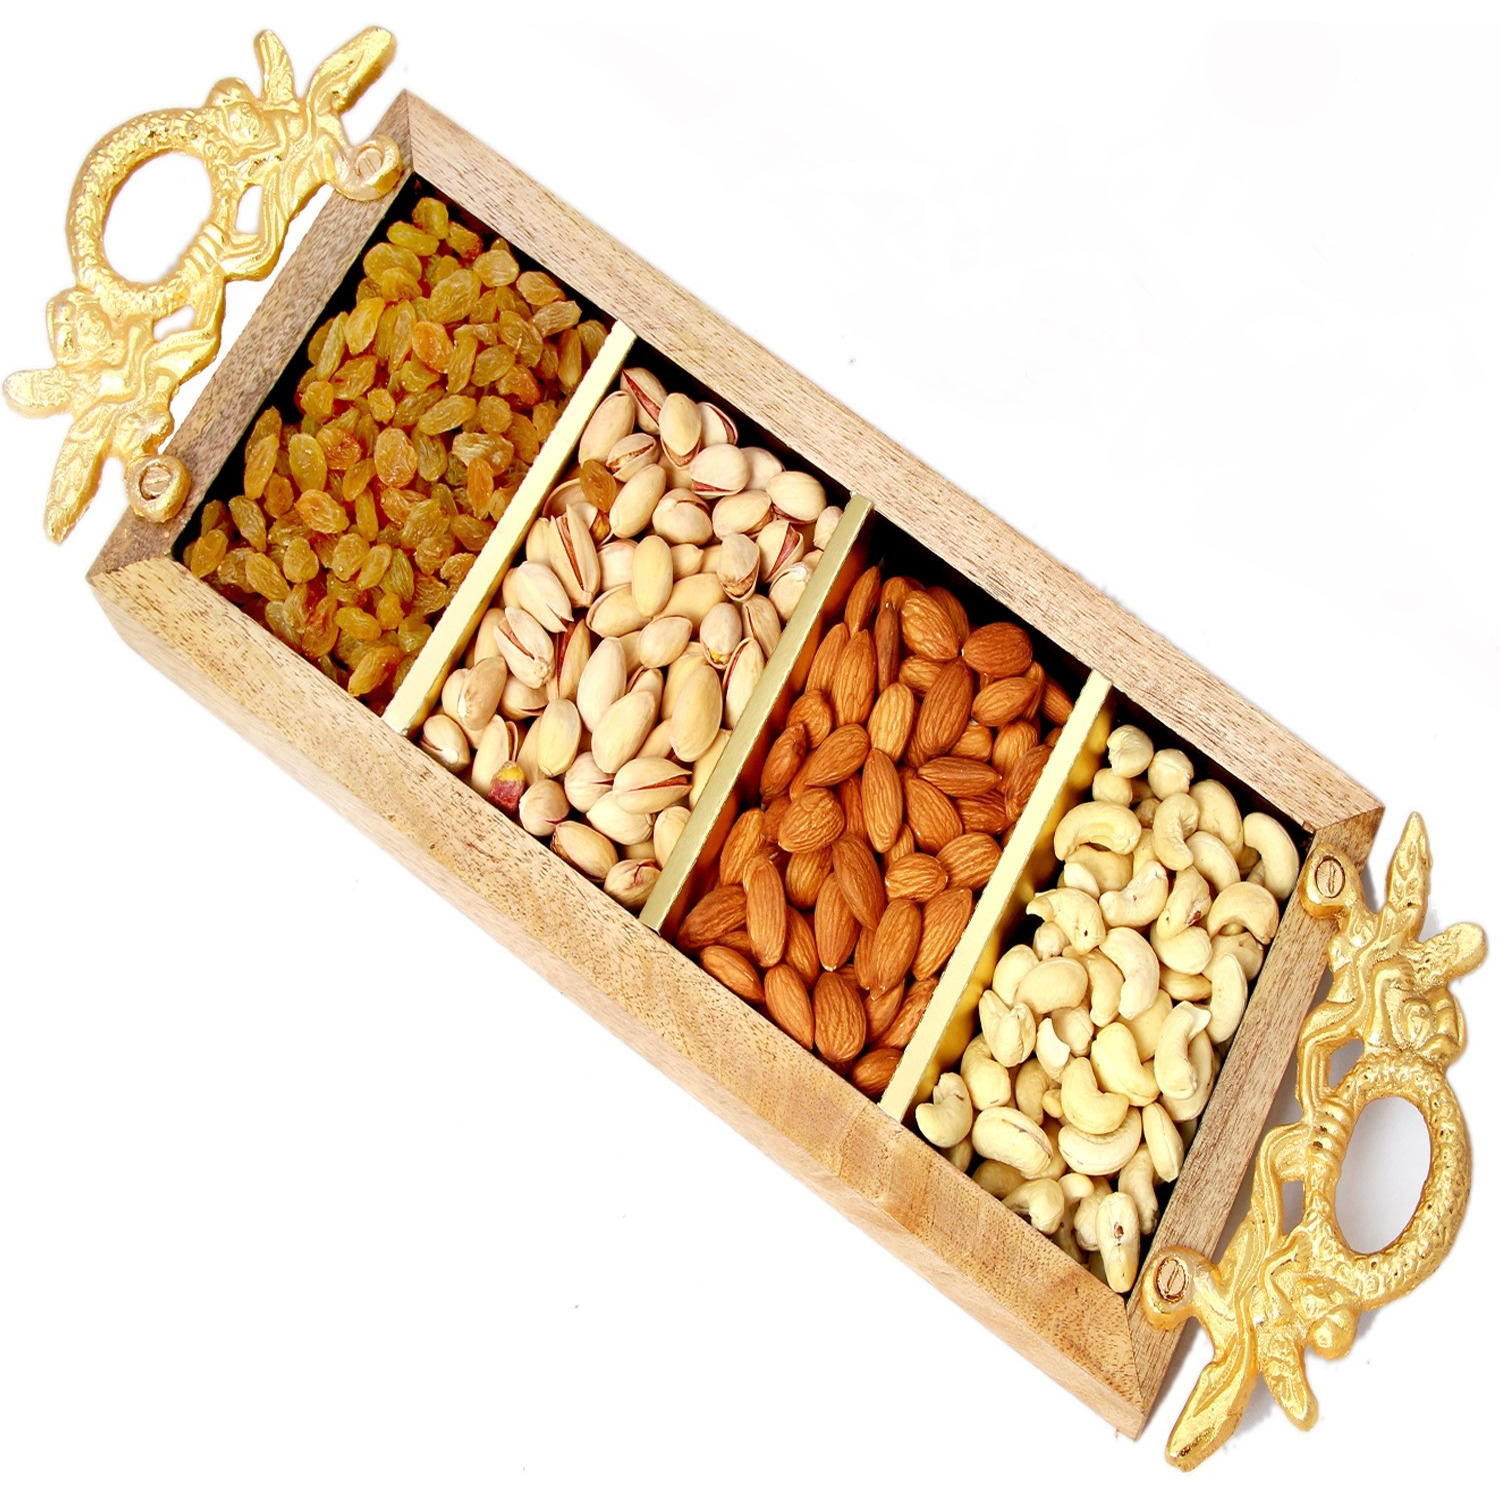 Ghasitaram Gifts Dryfruits -  Golden Handle Wooden Dryfruit Tray